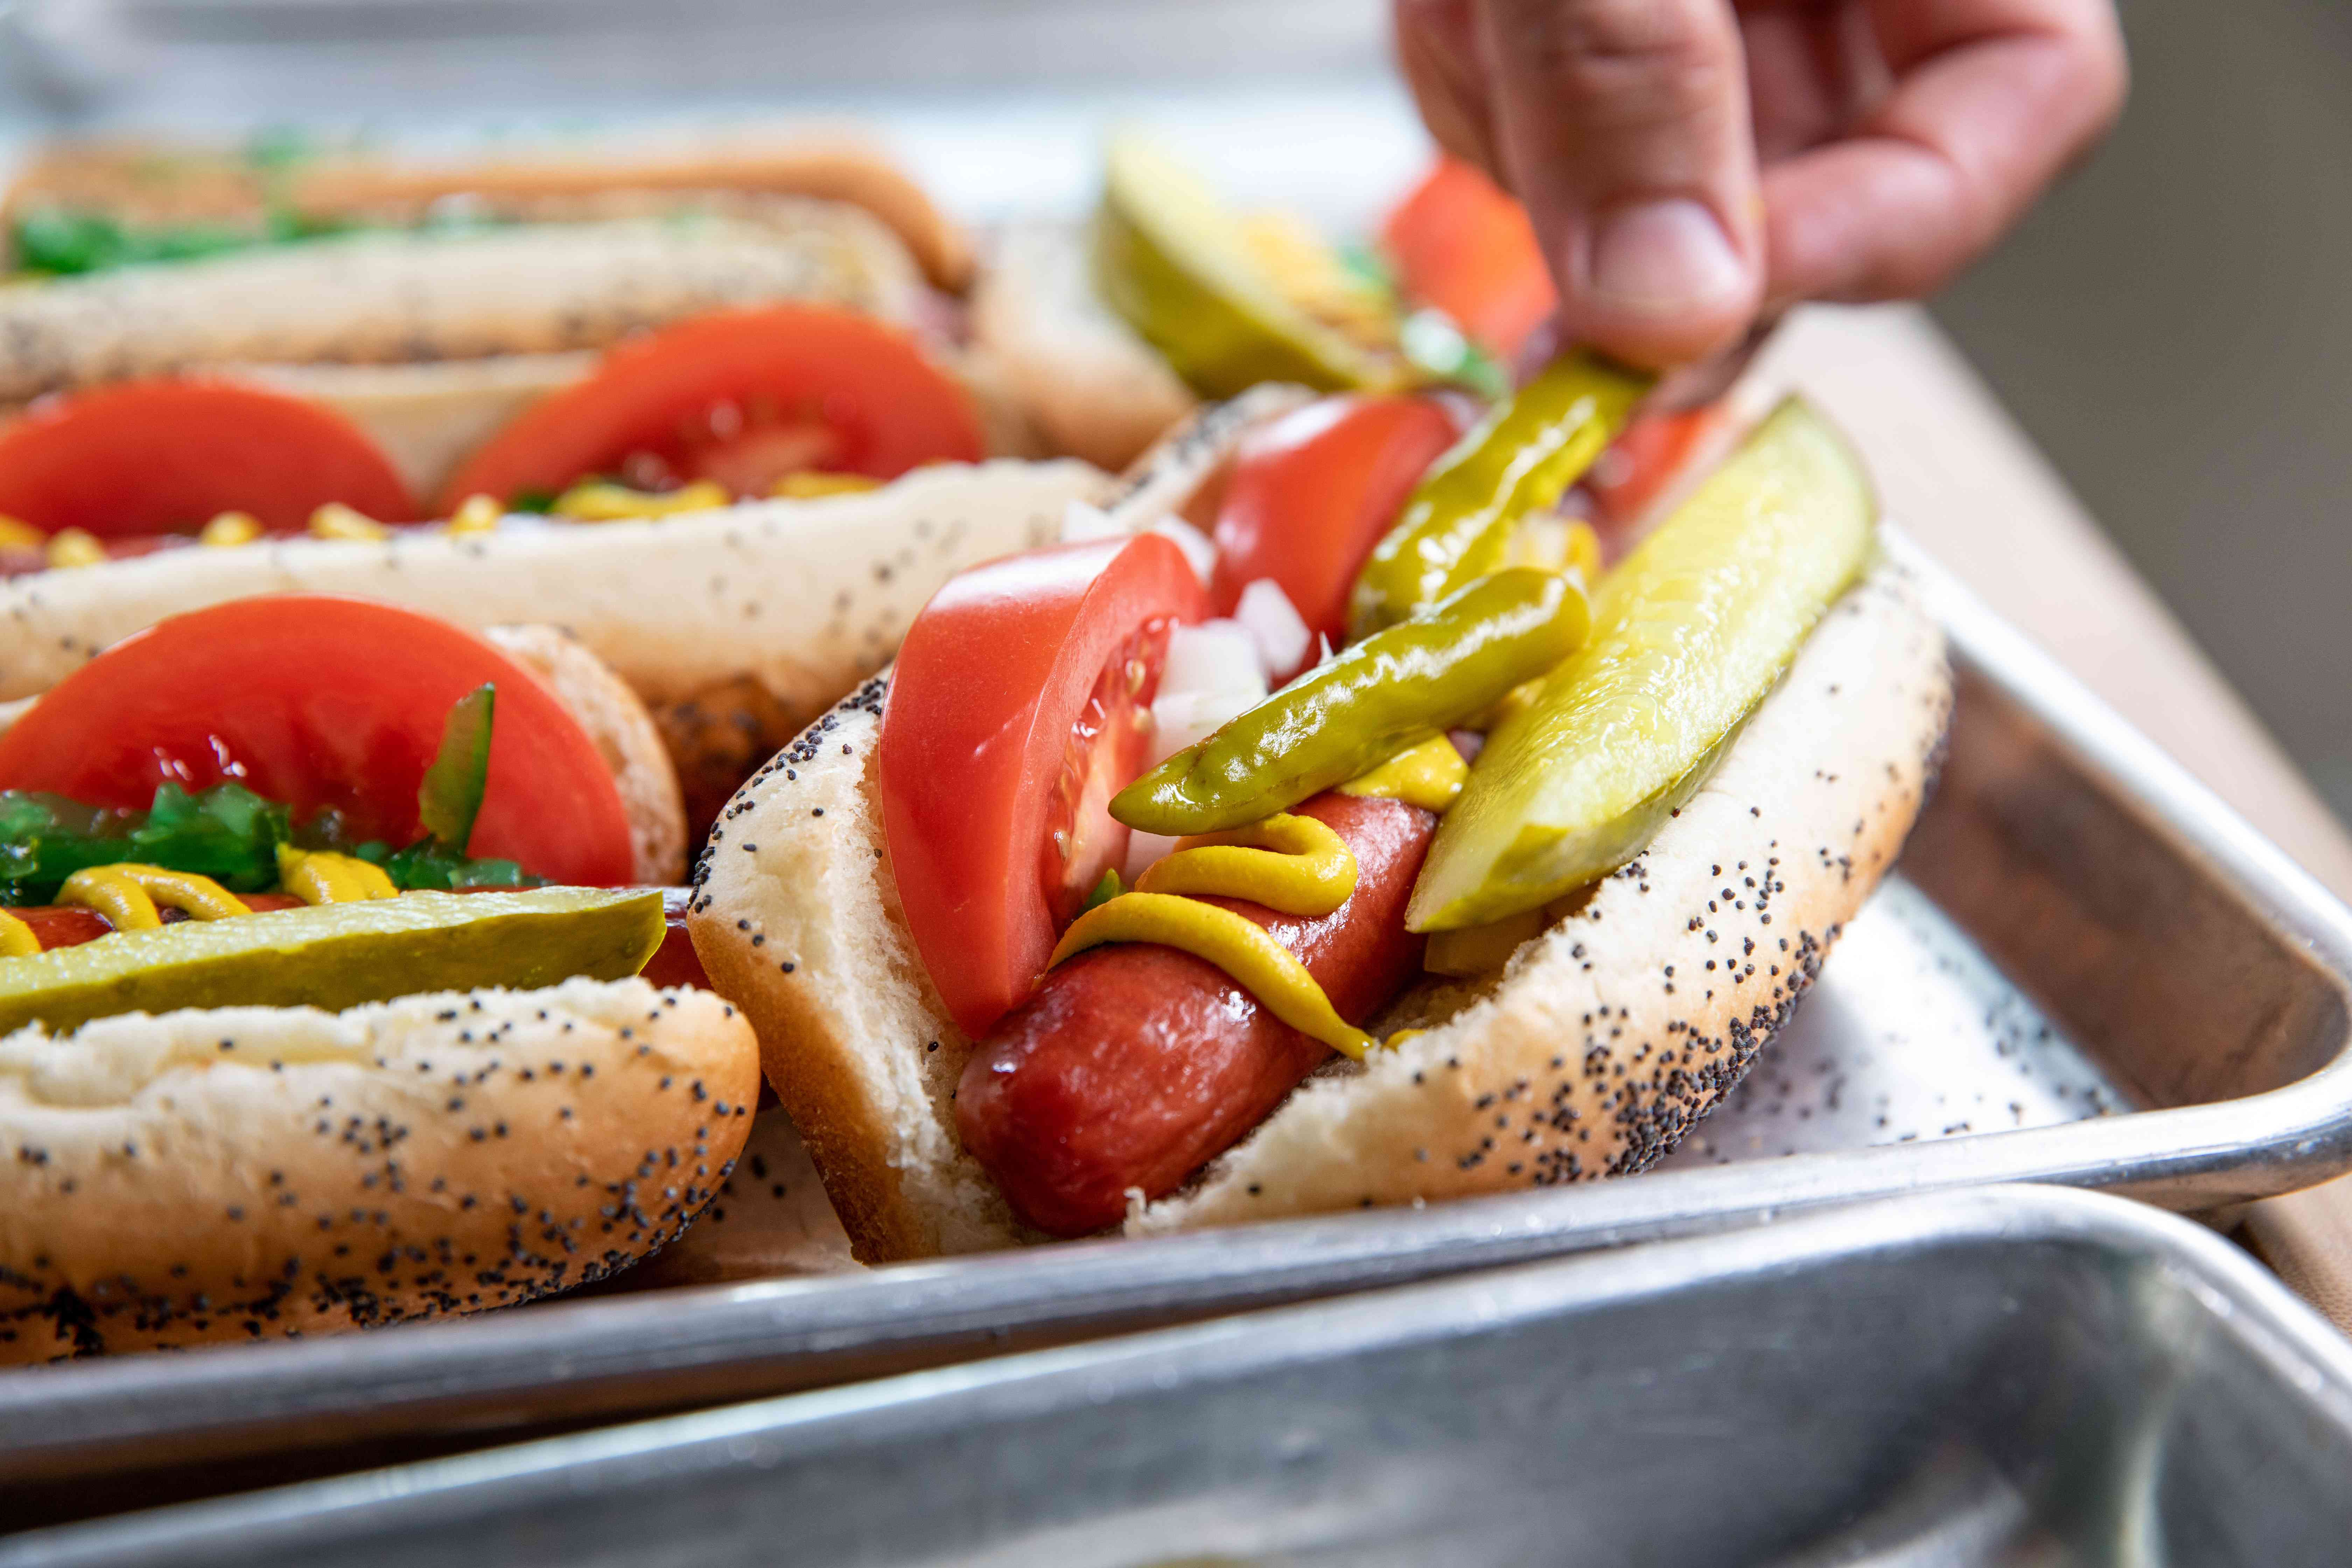 Adding tomatoes, pickles, and sport peppers to make Chicago-style hot dogs.